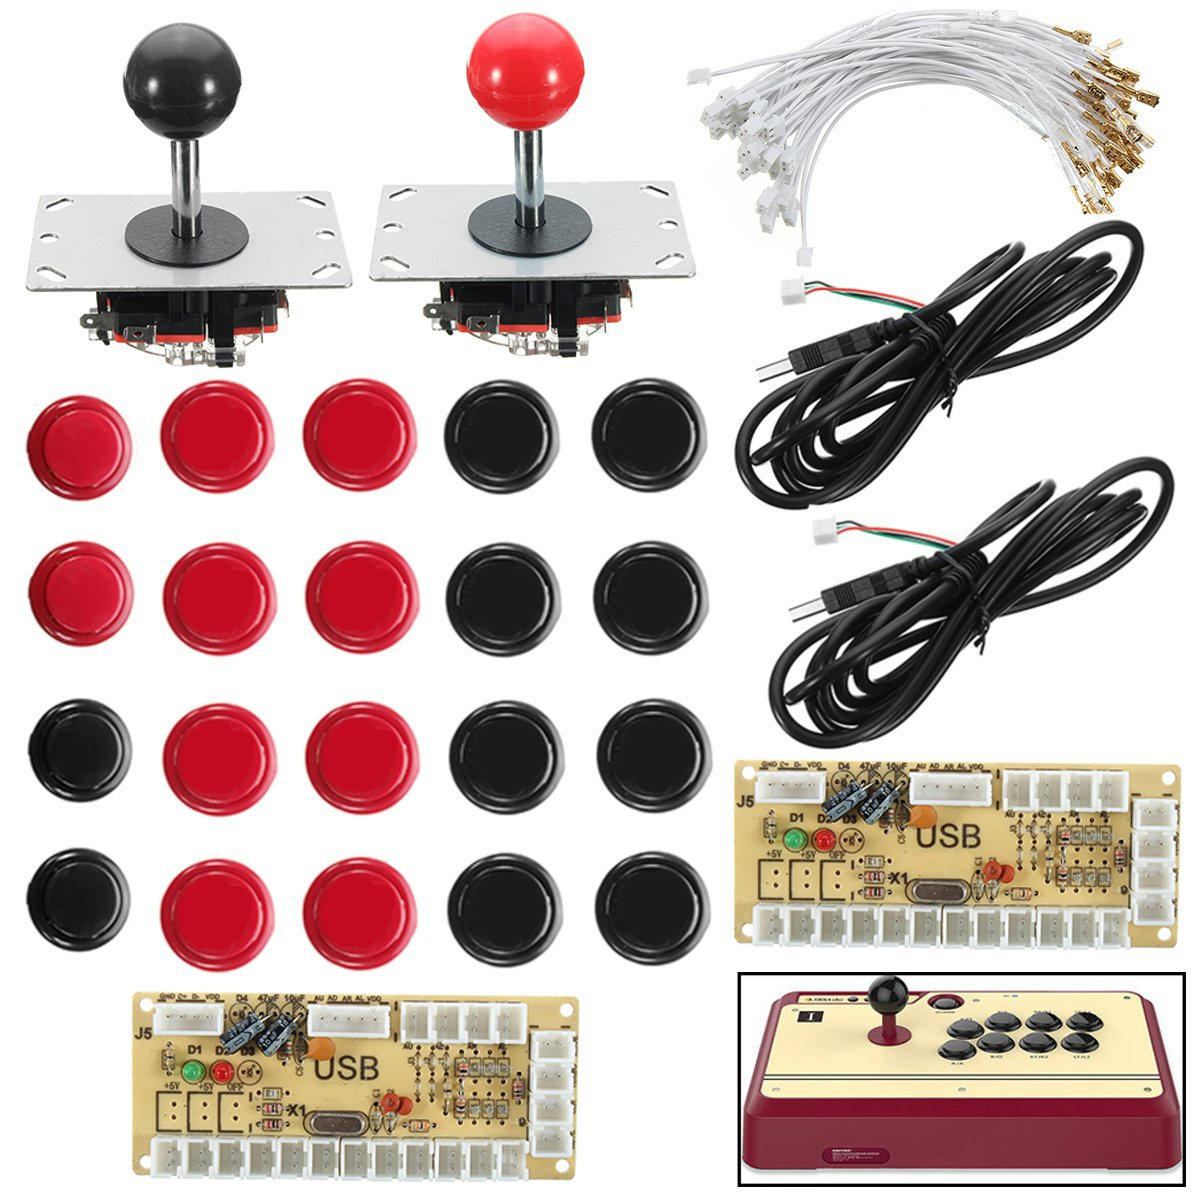 2 Player Zeros Delay Joystick Arcade+LED USB Encoder+20 Illuminated Push Buttons+28 Cables Arcade Game For MAME for Raspberry Pi